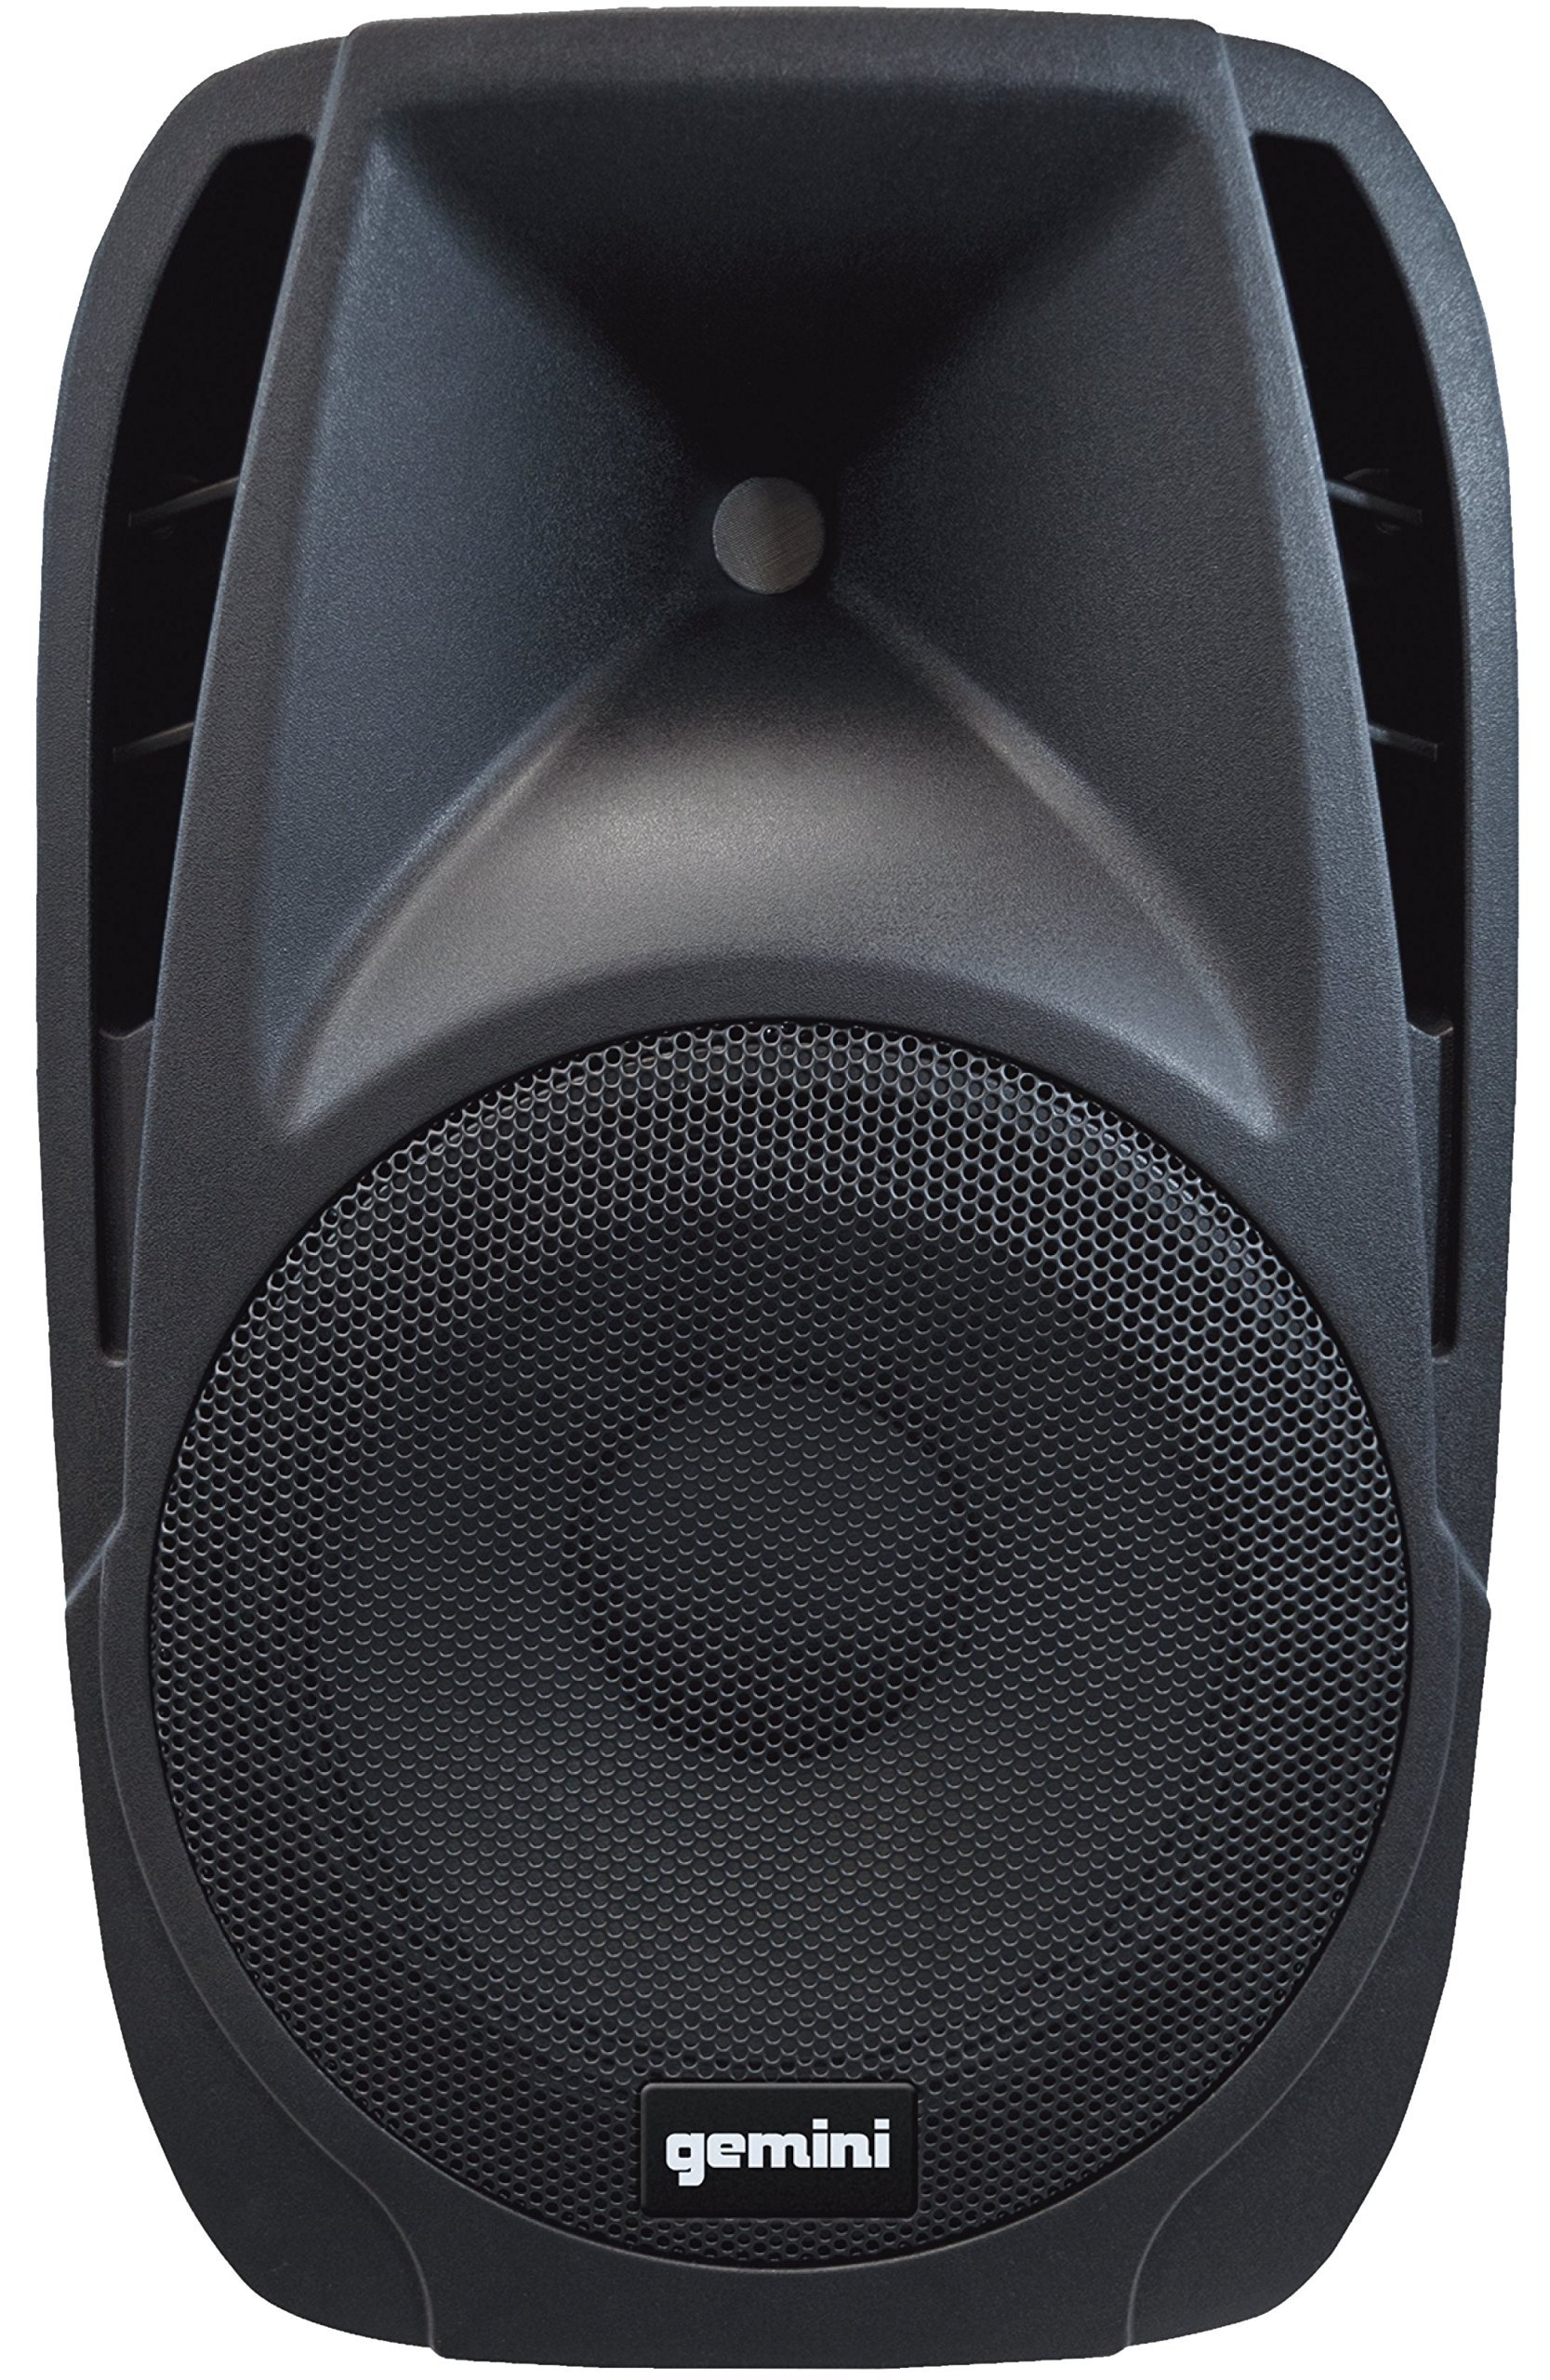 Gemini ES Series ES-210MXBLU Professional Audio Portable PA System with Two 10'' Passive Speakers and Microphone Included, 8 Channel Mixer, 4 Line/Mic Inputs by Gemini (Image #2)